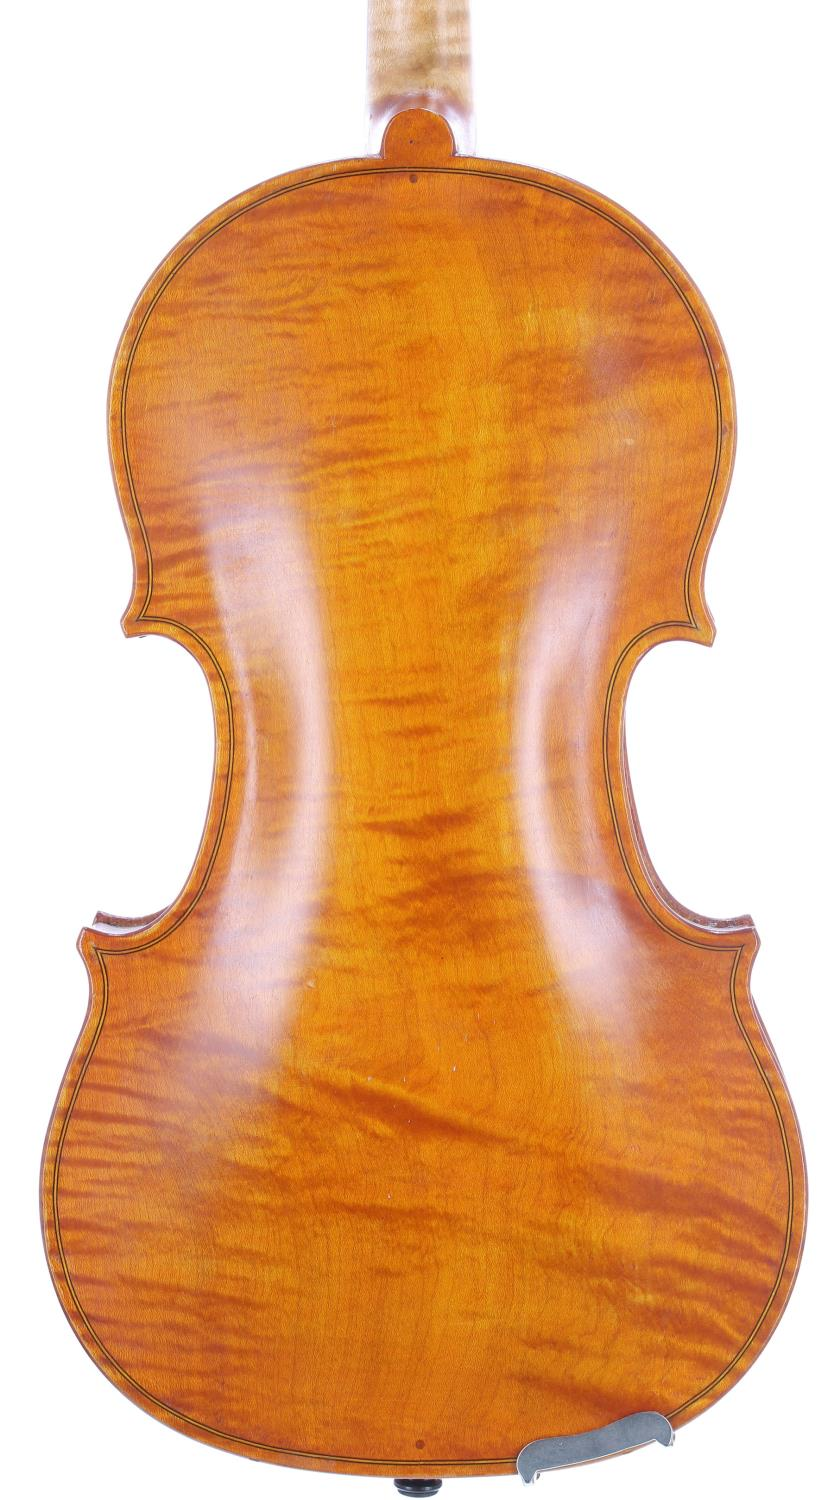 English violin by and labelled Dennis G. Plowright, maker, 28 Raleigh Road, Exmouth, no. 128, 1988 - Image 2 of 3